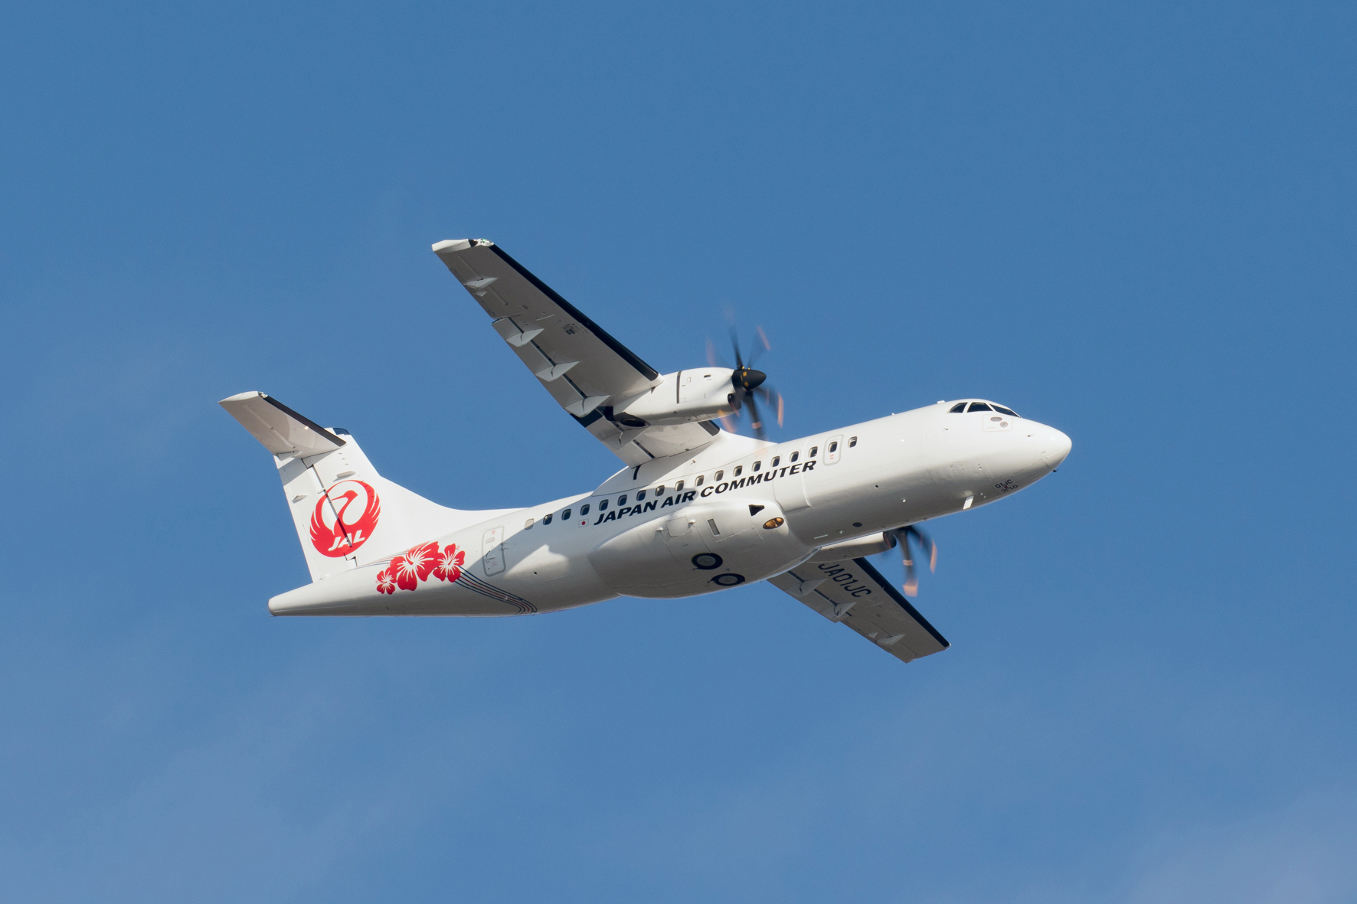 Japan Air Commuter starts operations with ATR